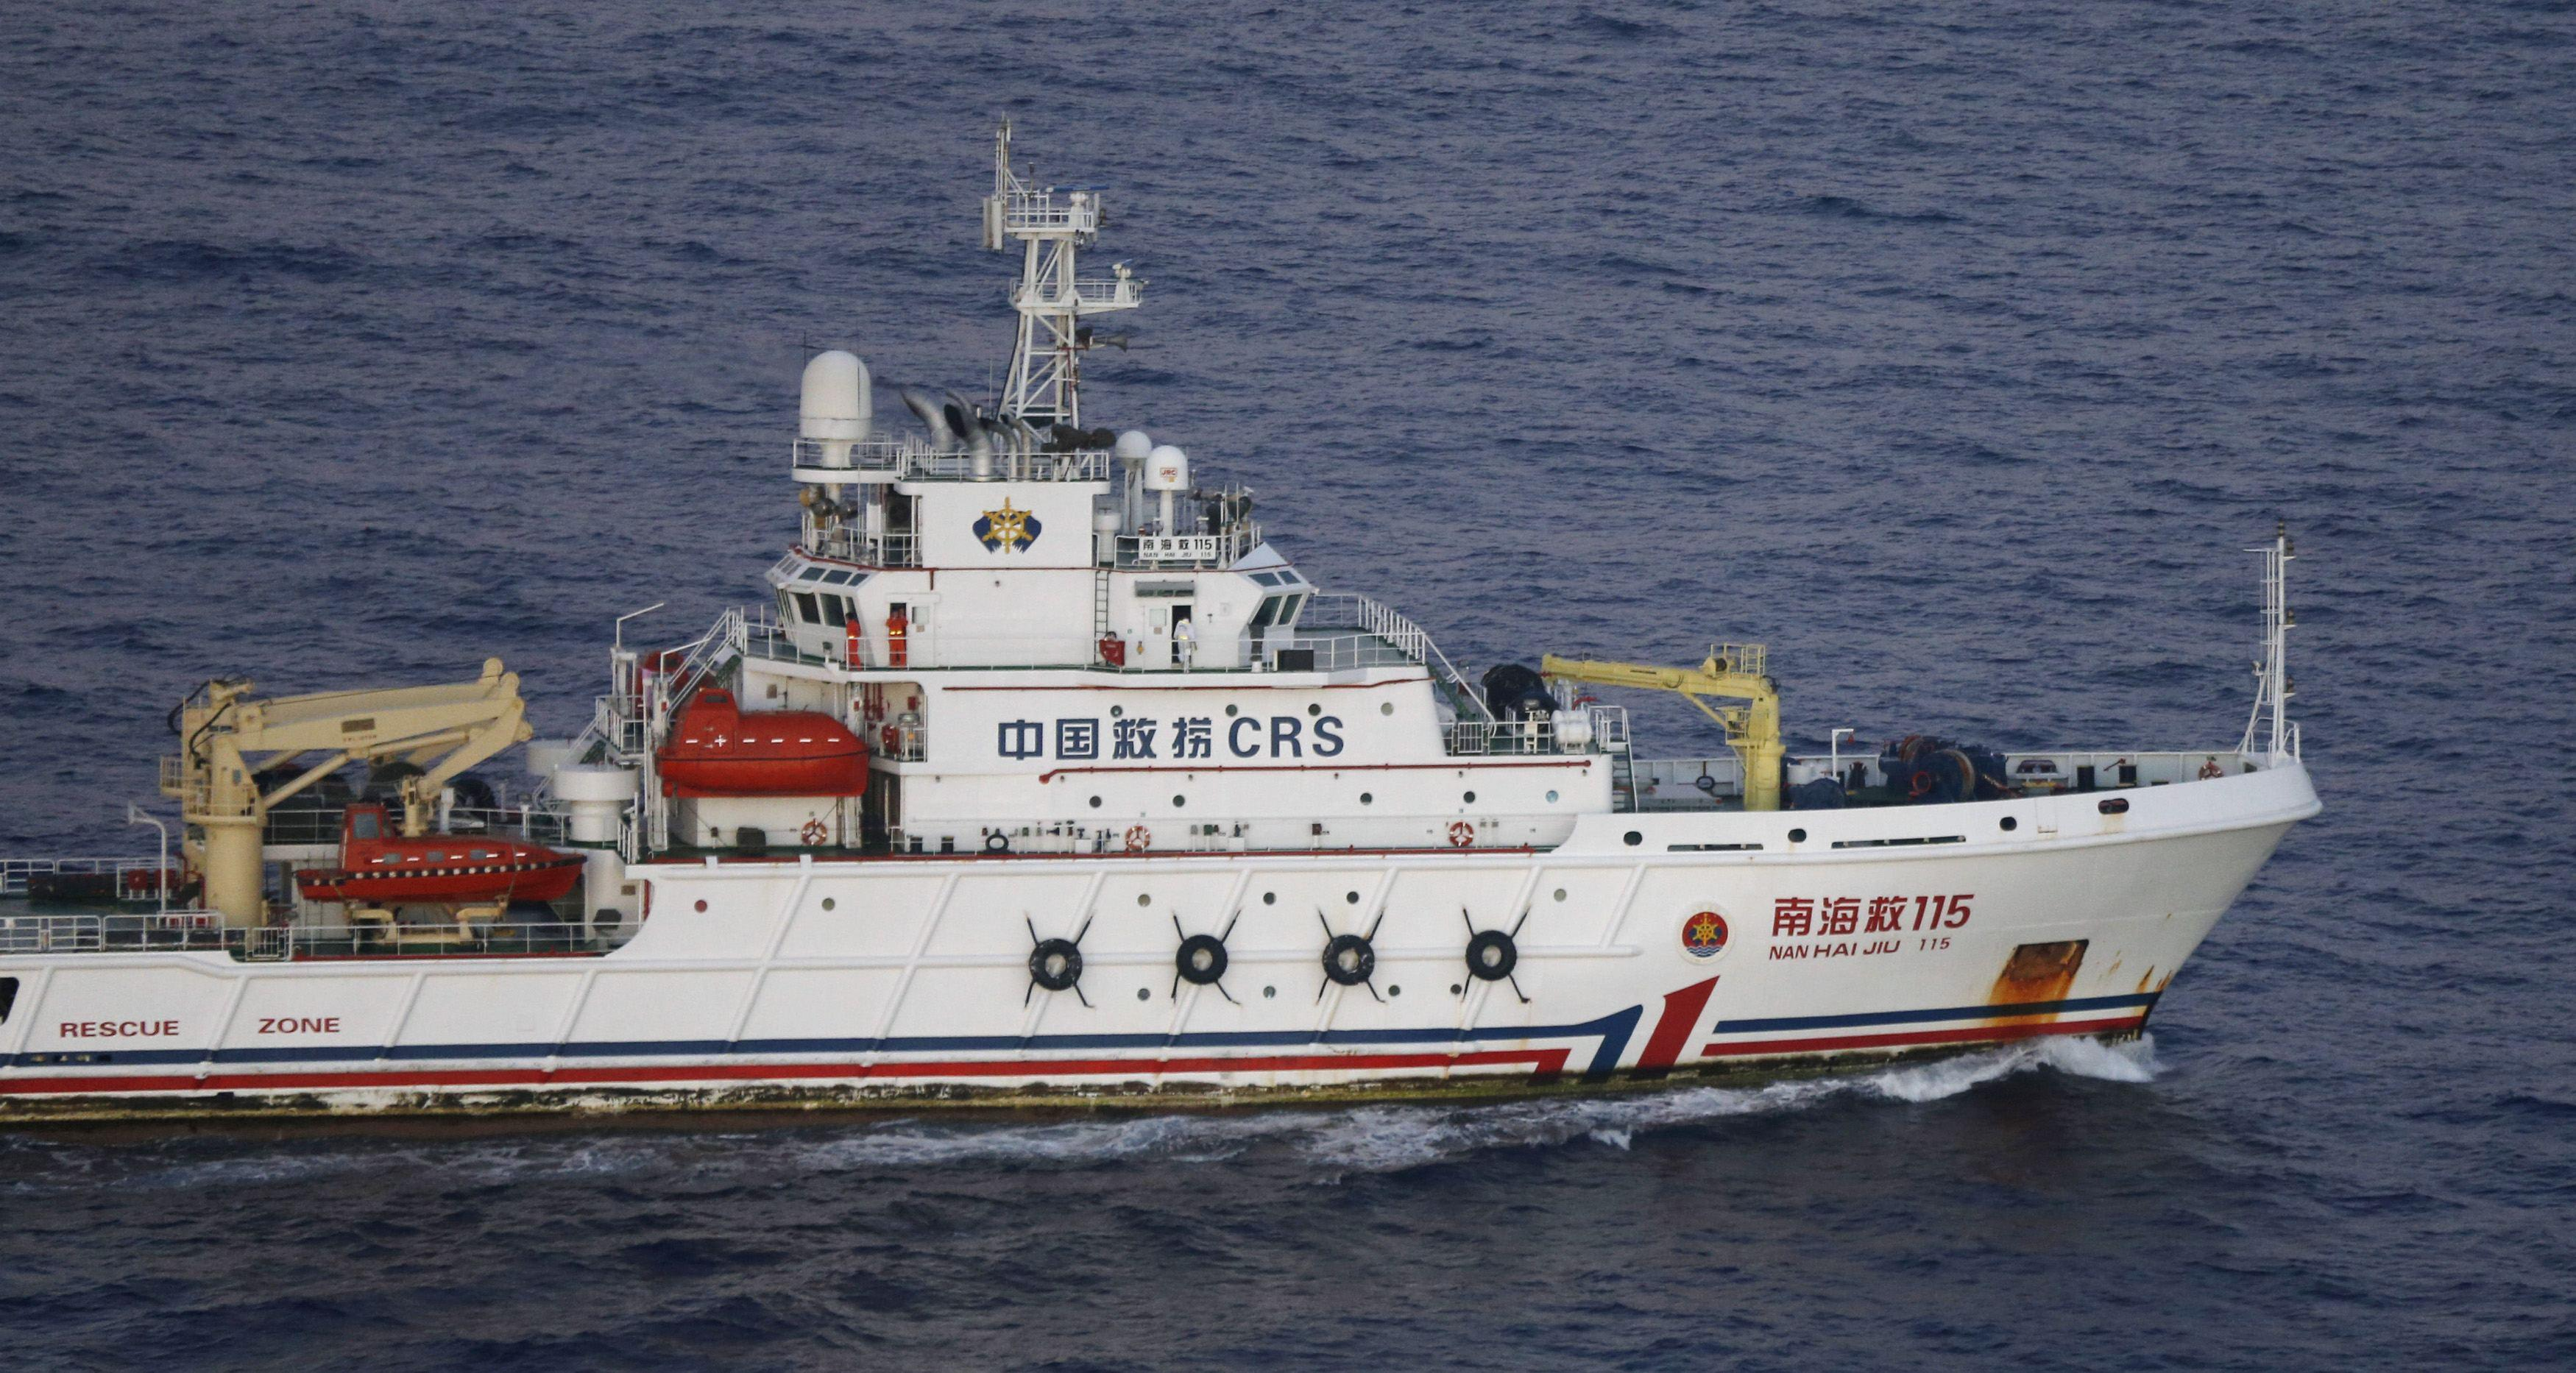 MH370 search Nan Hai Jiu Chinese Ship